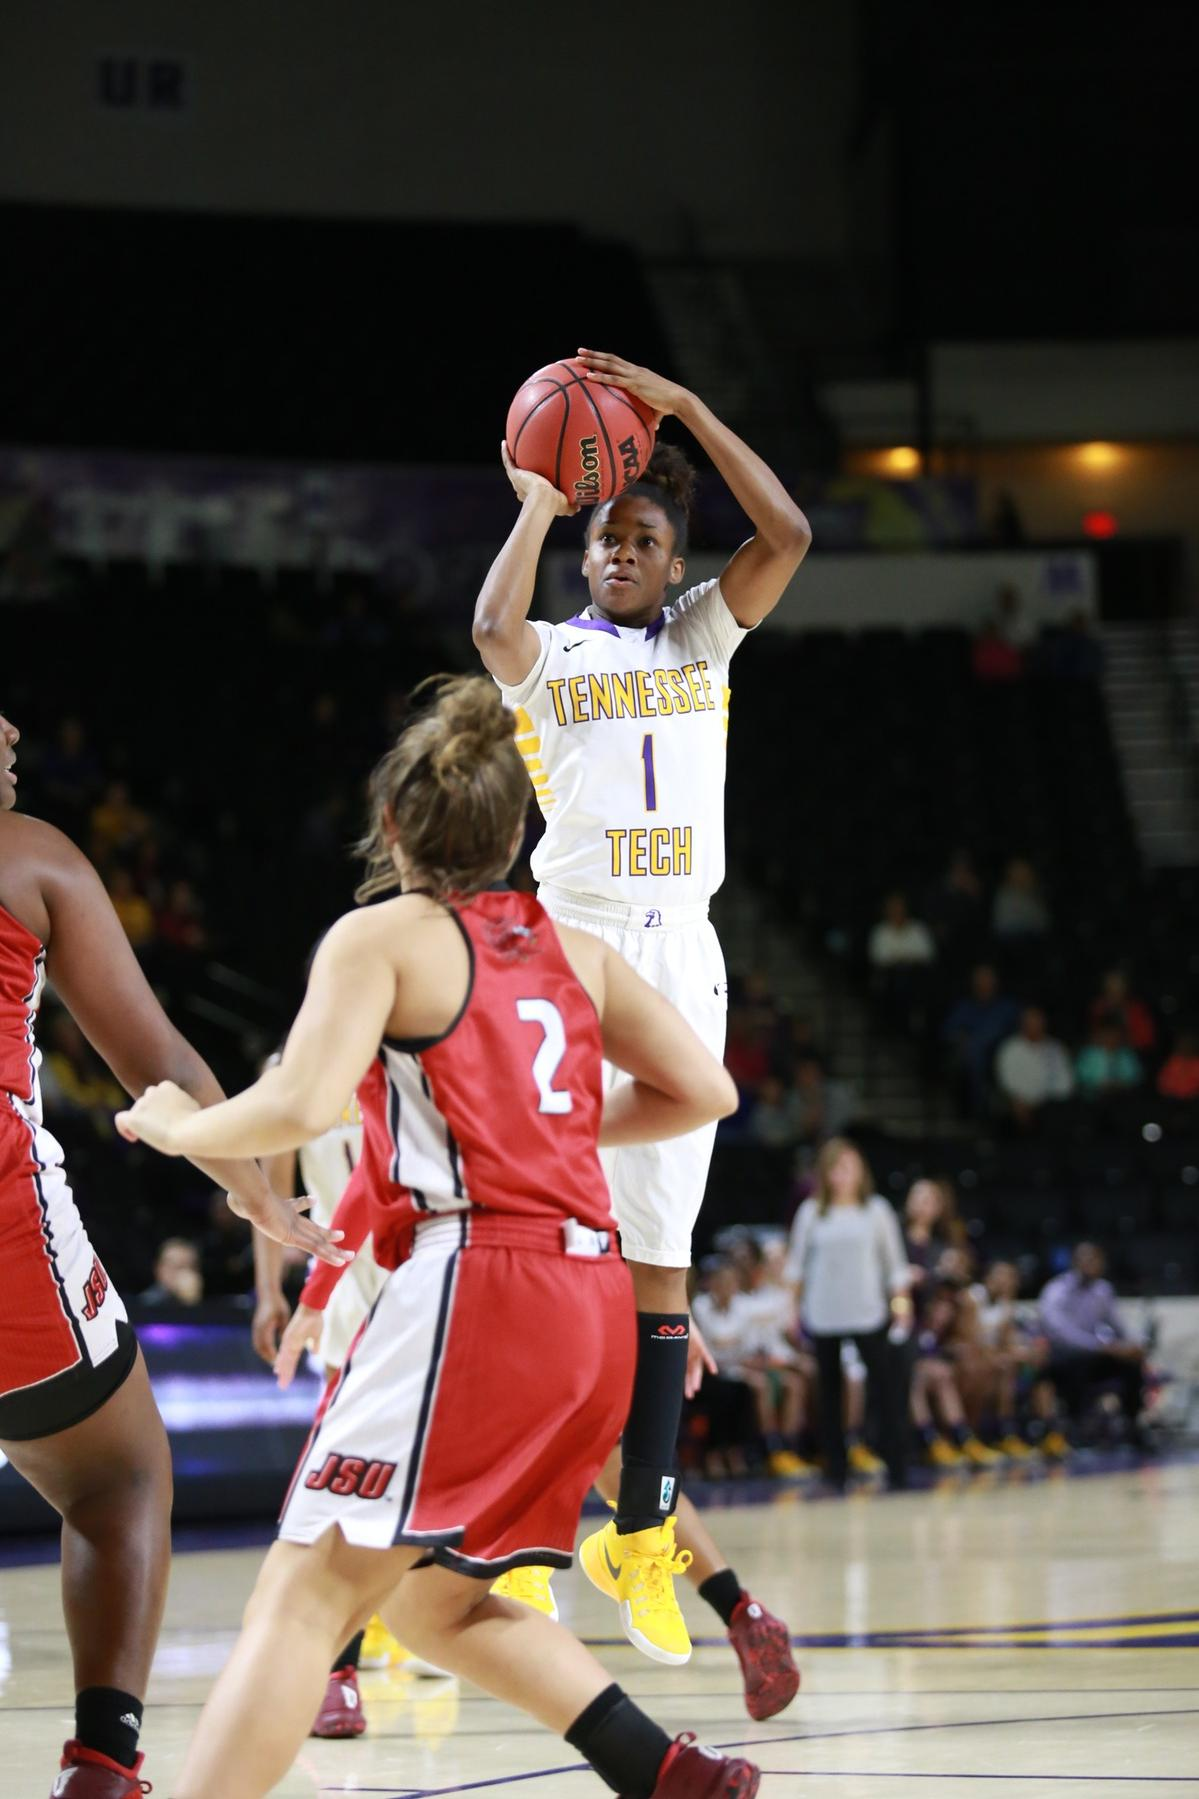 kandace tip newry tennessee tech jacksonville st vs tennessee tech 1 14 2017 5 30 pm cst